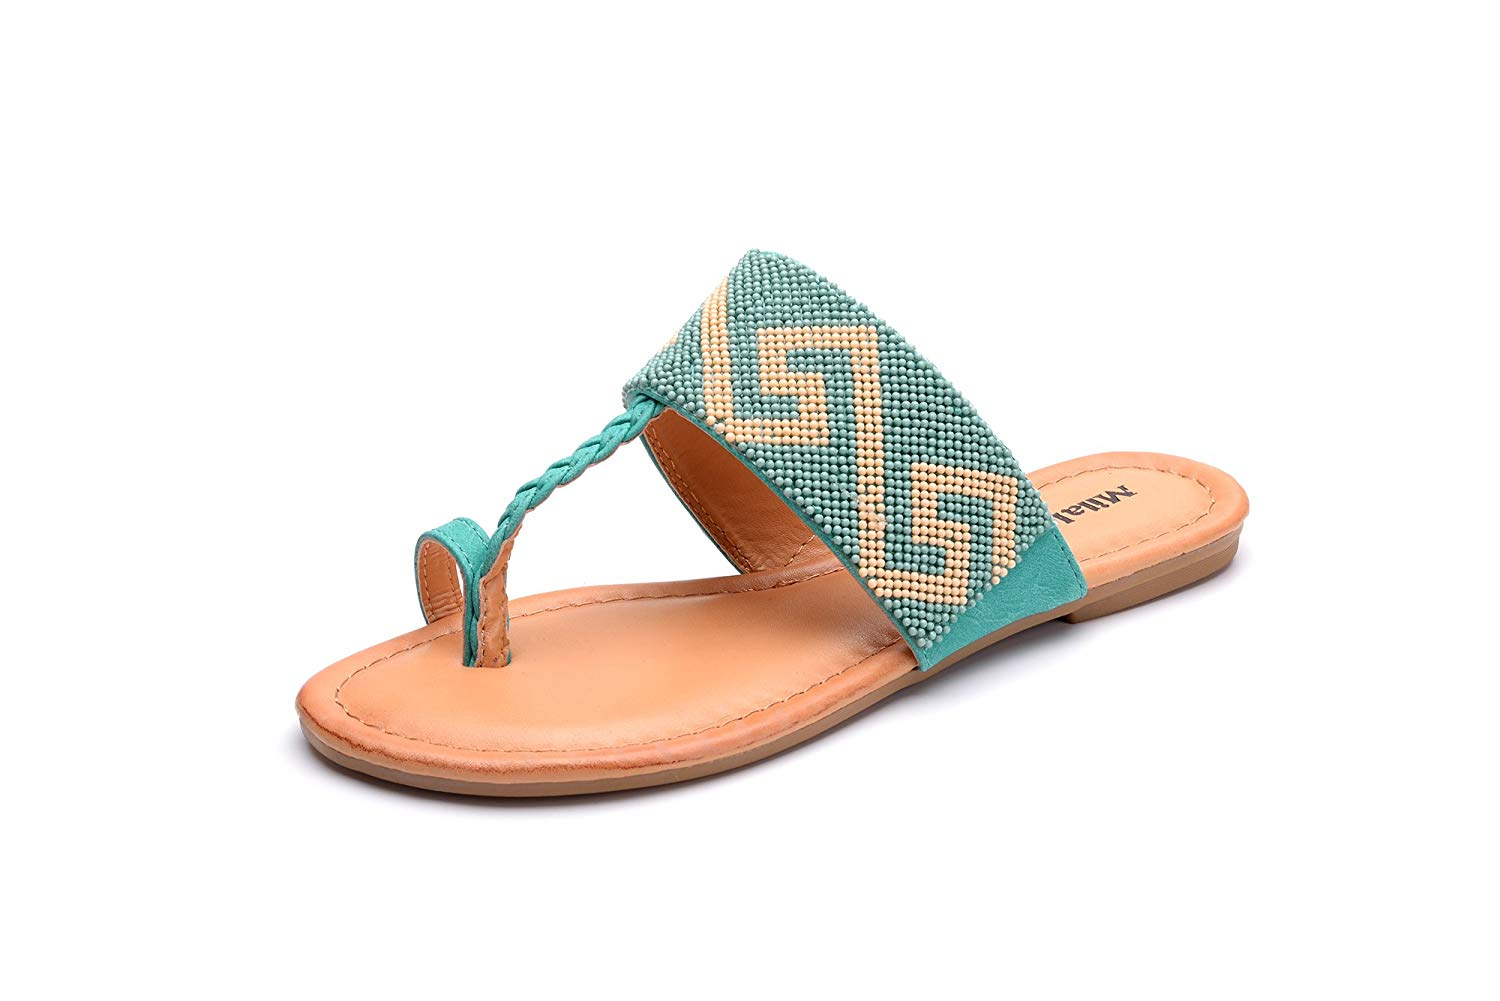 Mila Lady Amy-10 Tribal Beaded Indian Accent Toe Ring Slip On Flip Flop Flat Slide Sandals